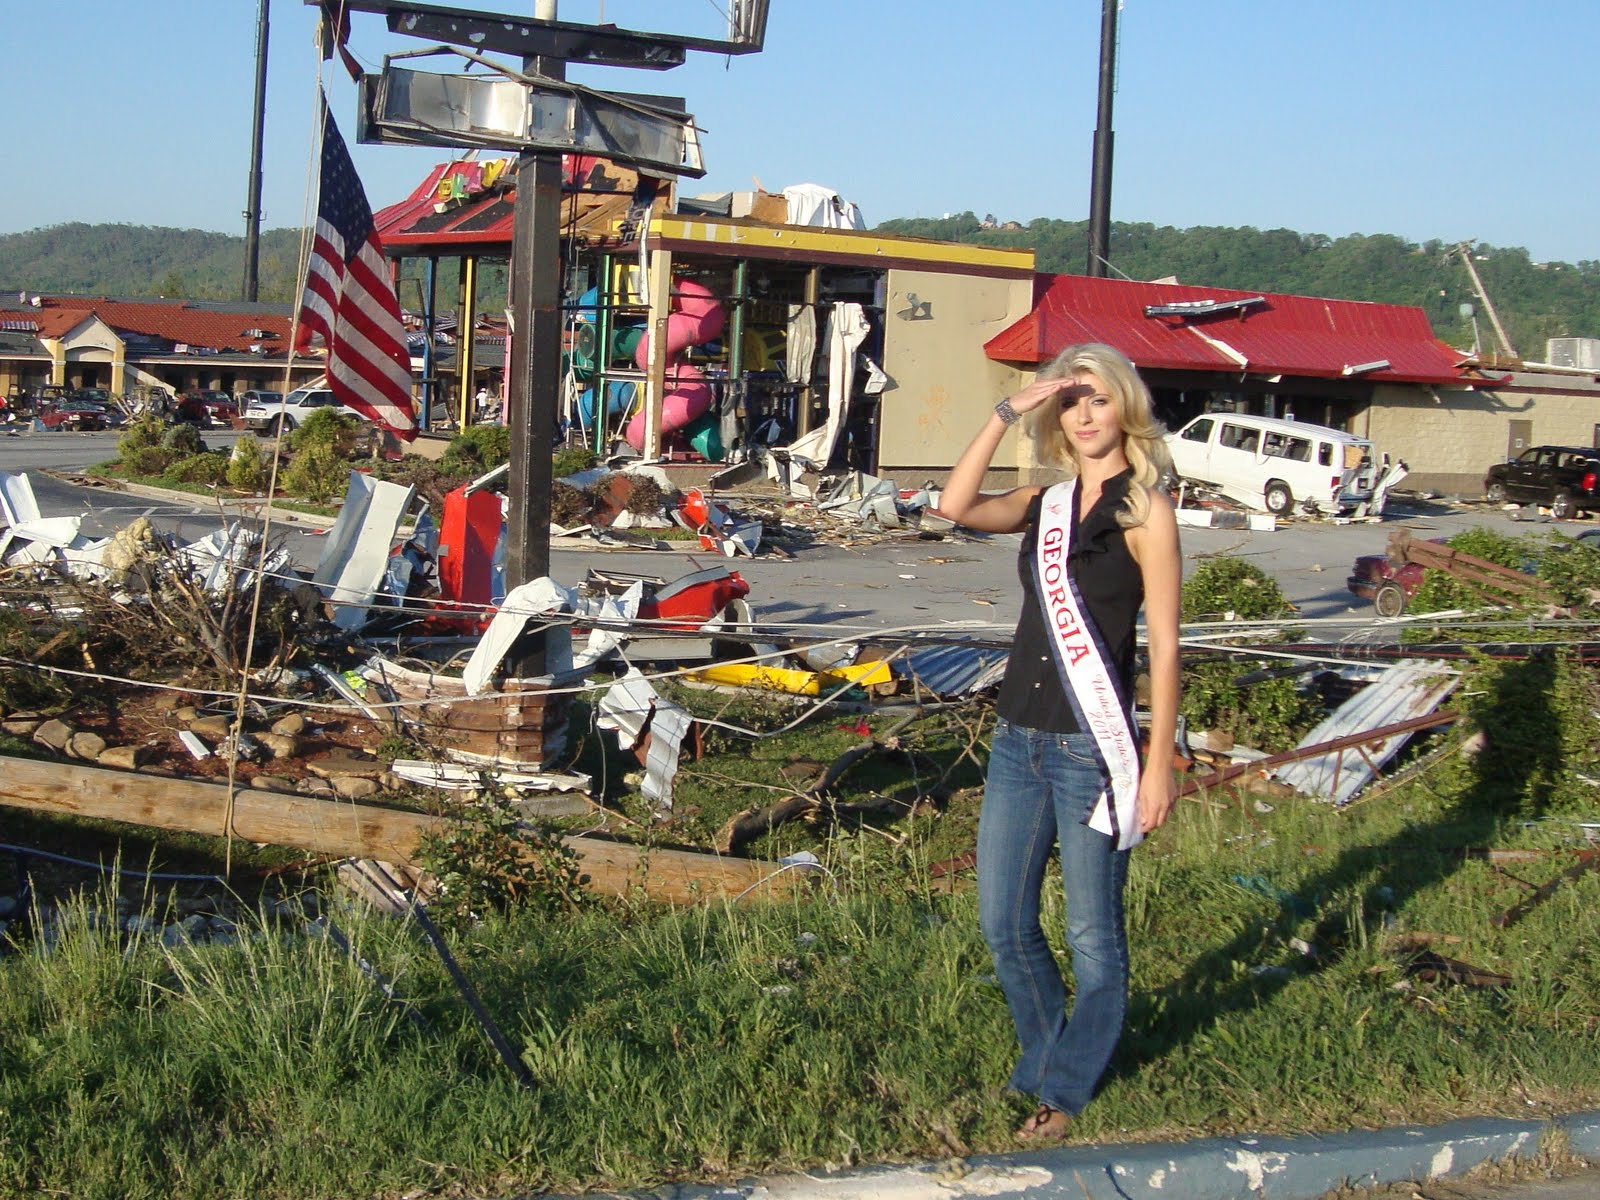 Ringgold (GA) United States  city pictures gallery : Miss Georgia United States 2011: Tornado Disaster Ringgold, GA My ...